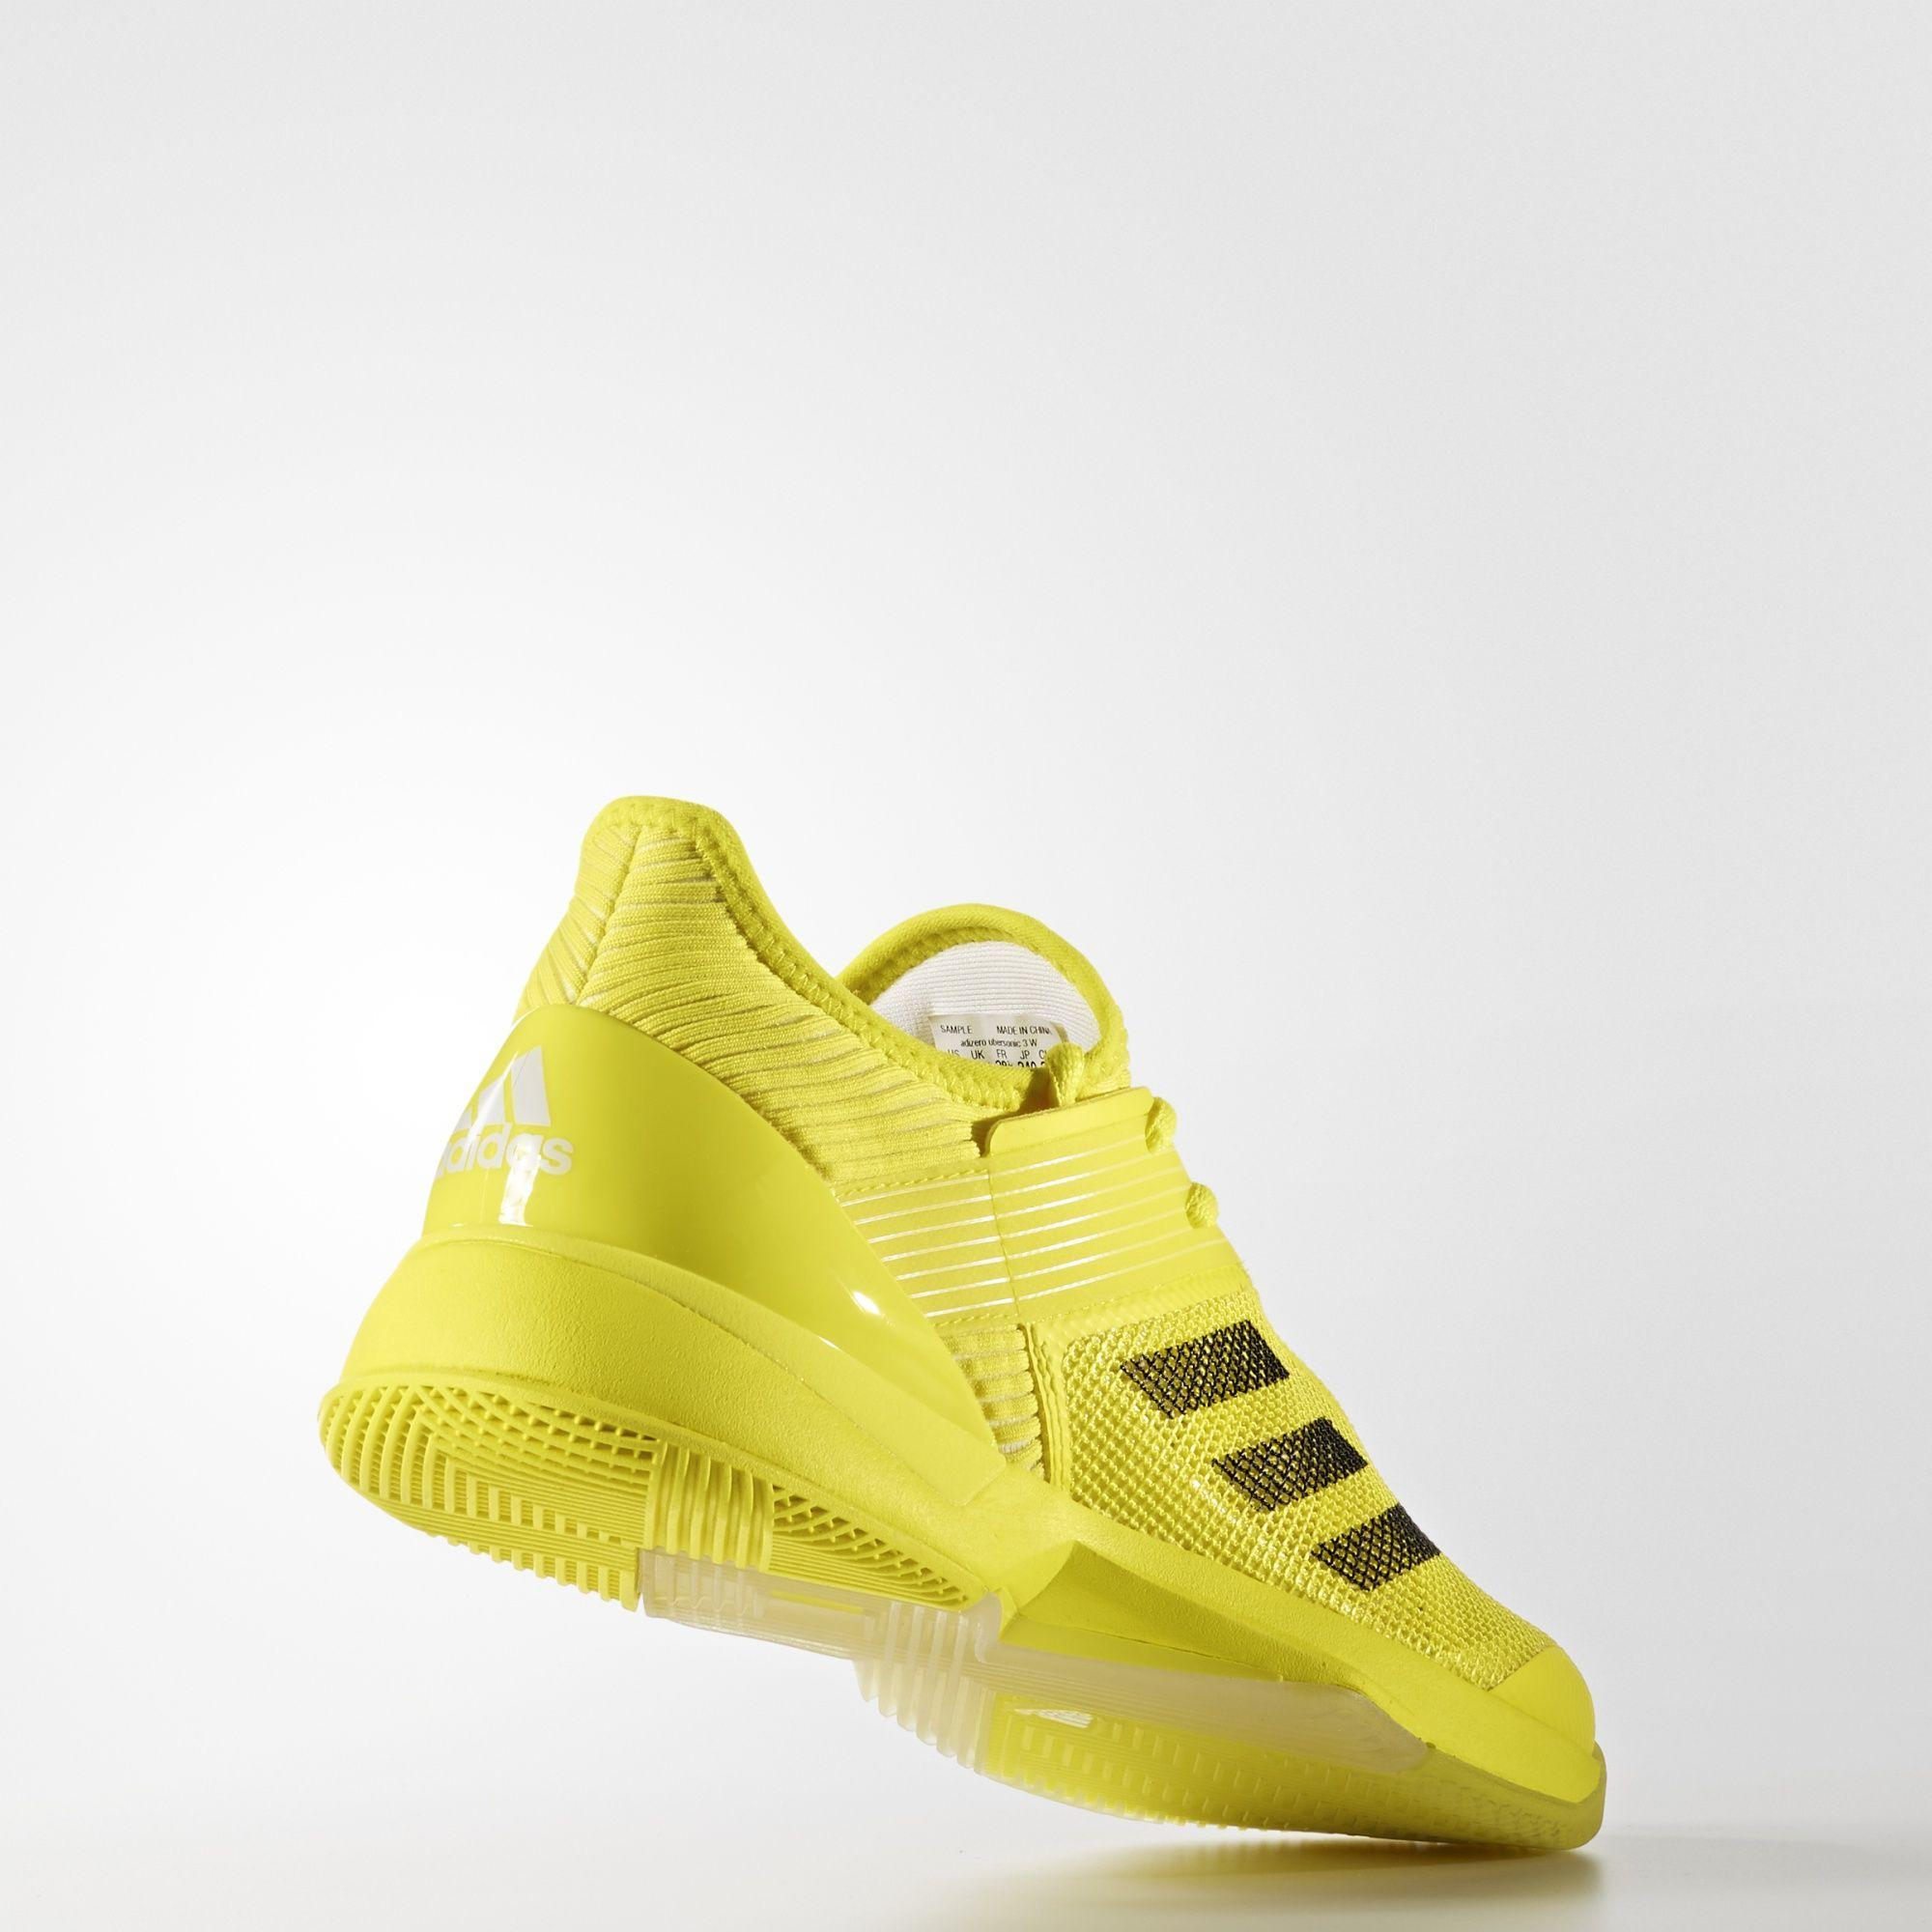 adidas adizero ubersonic 3 jade womens shoes